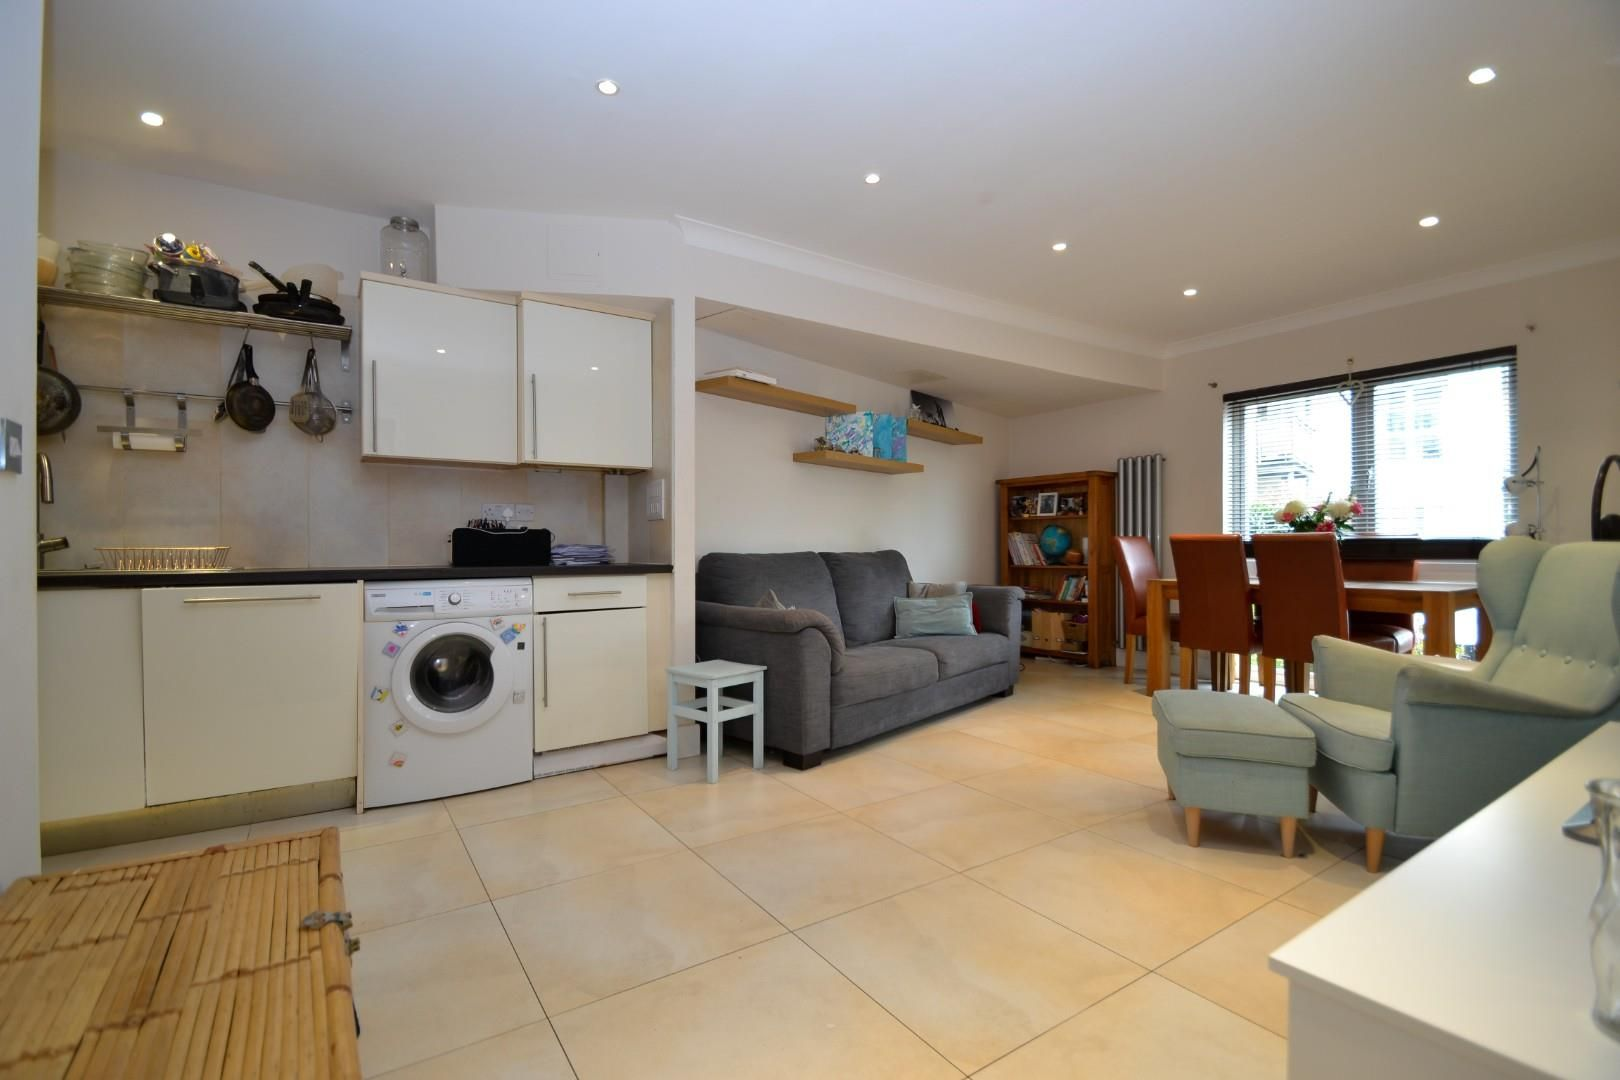 2 bed apartment for sale 3